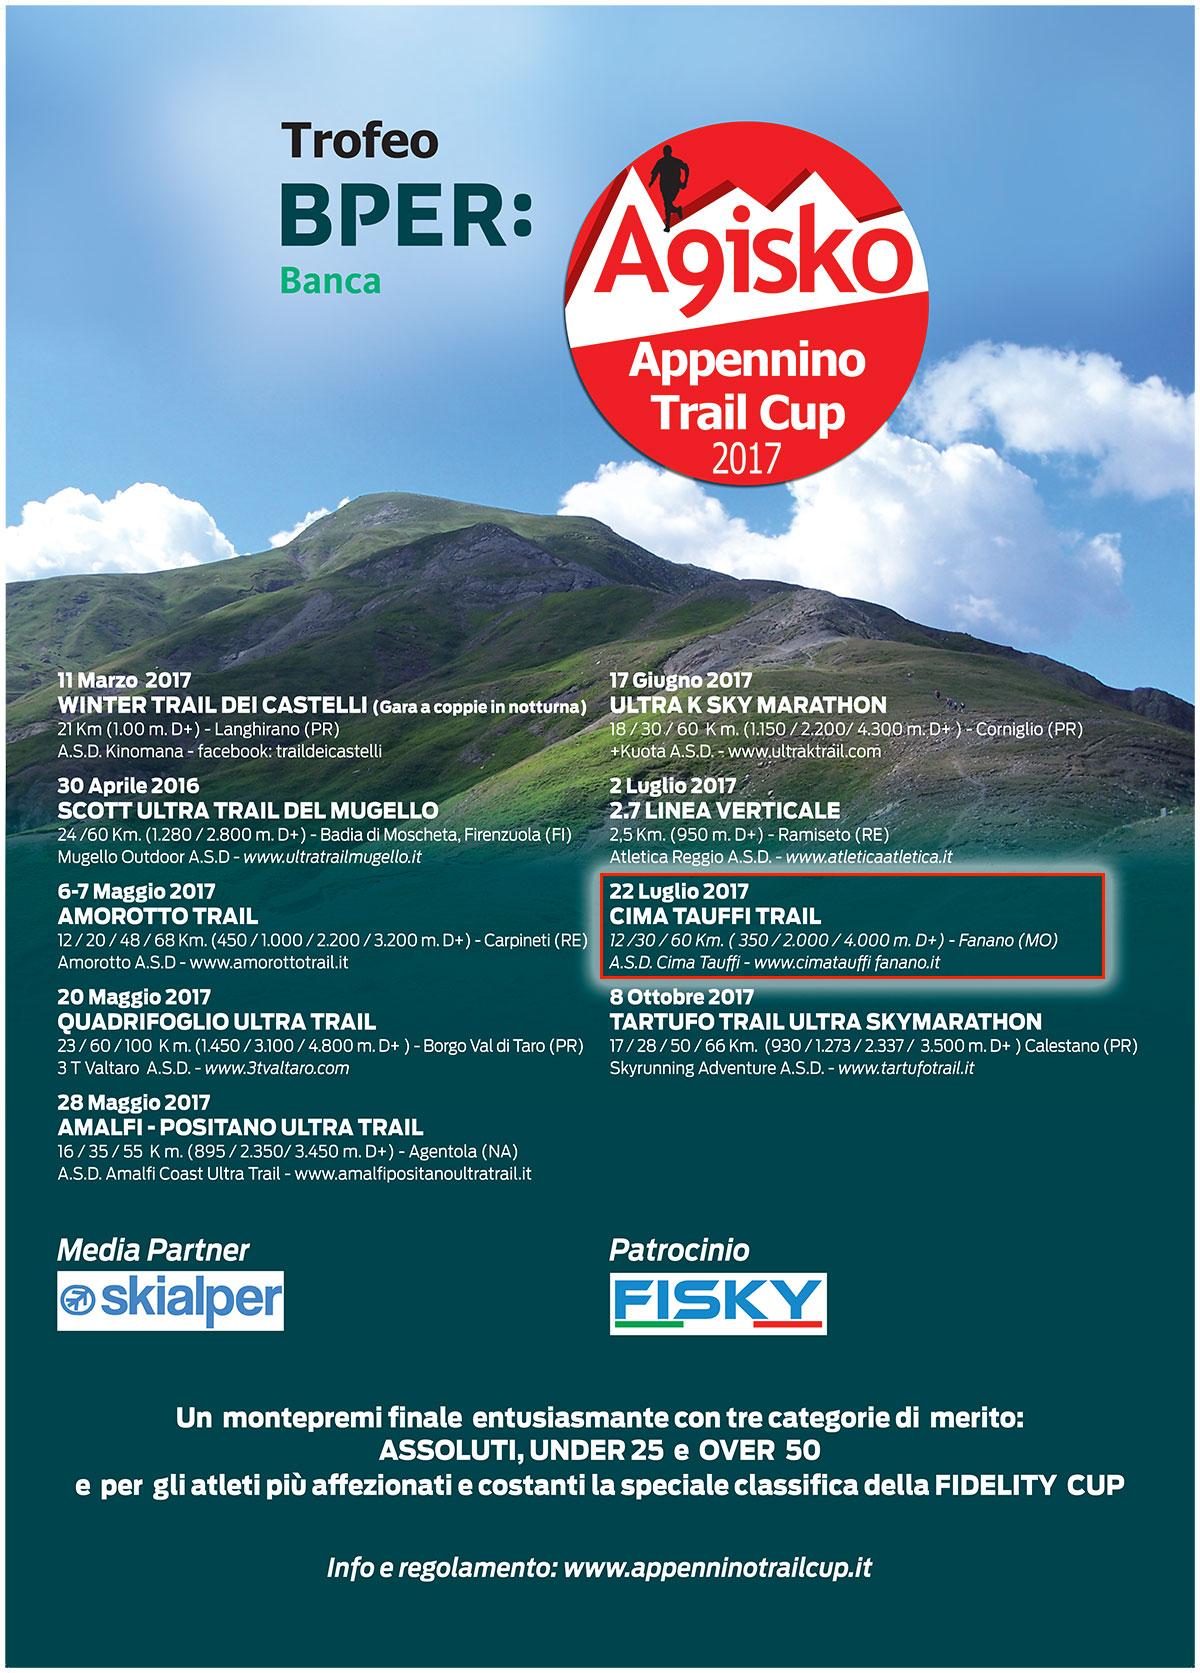 Appennino trail cup 2017